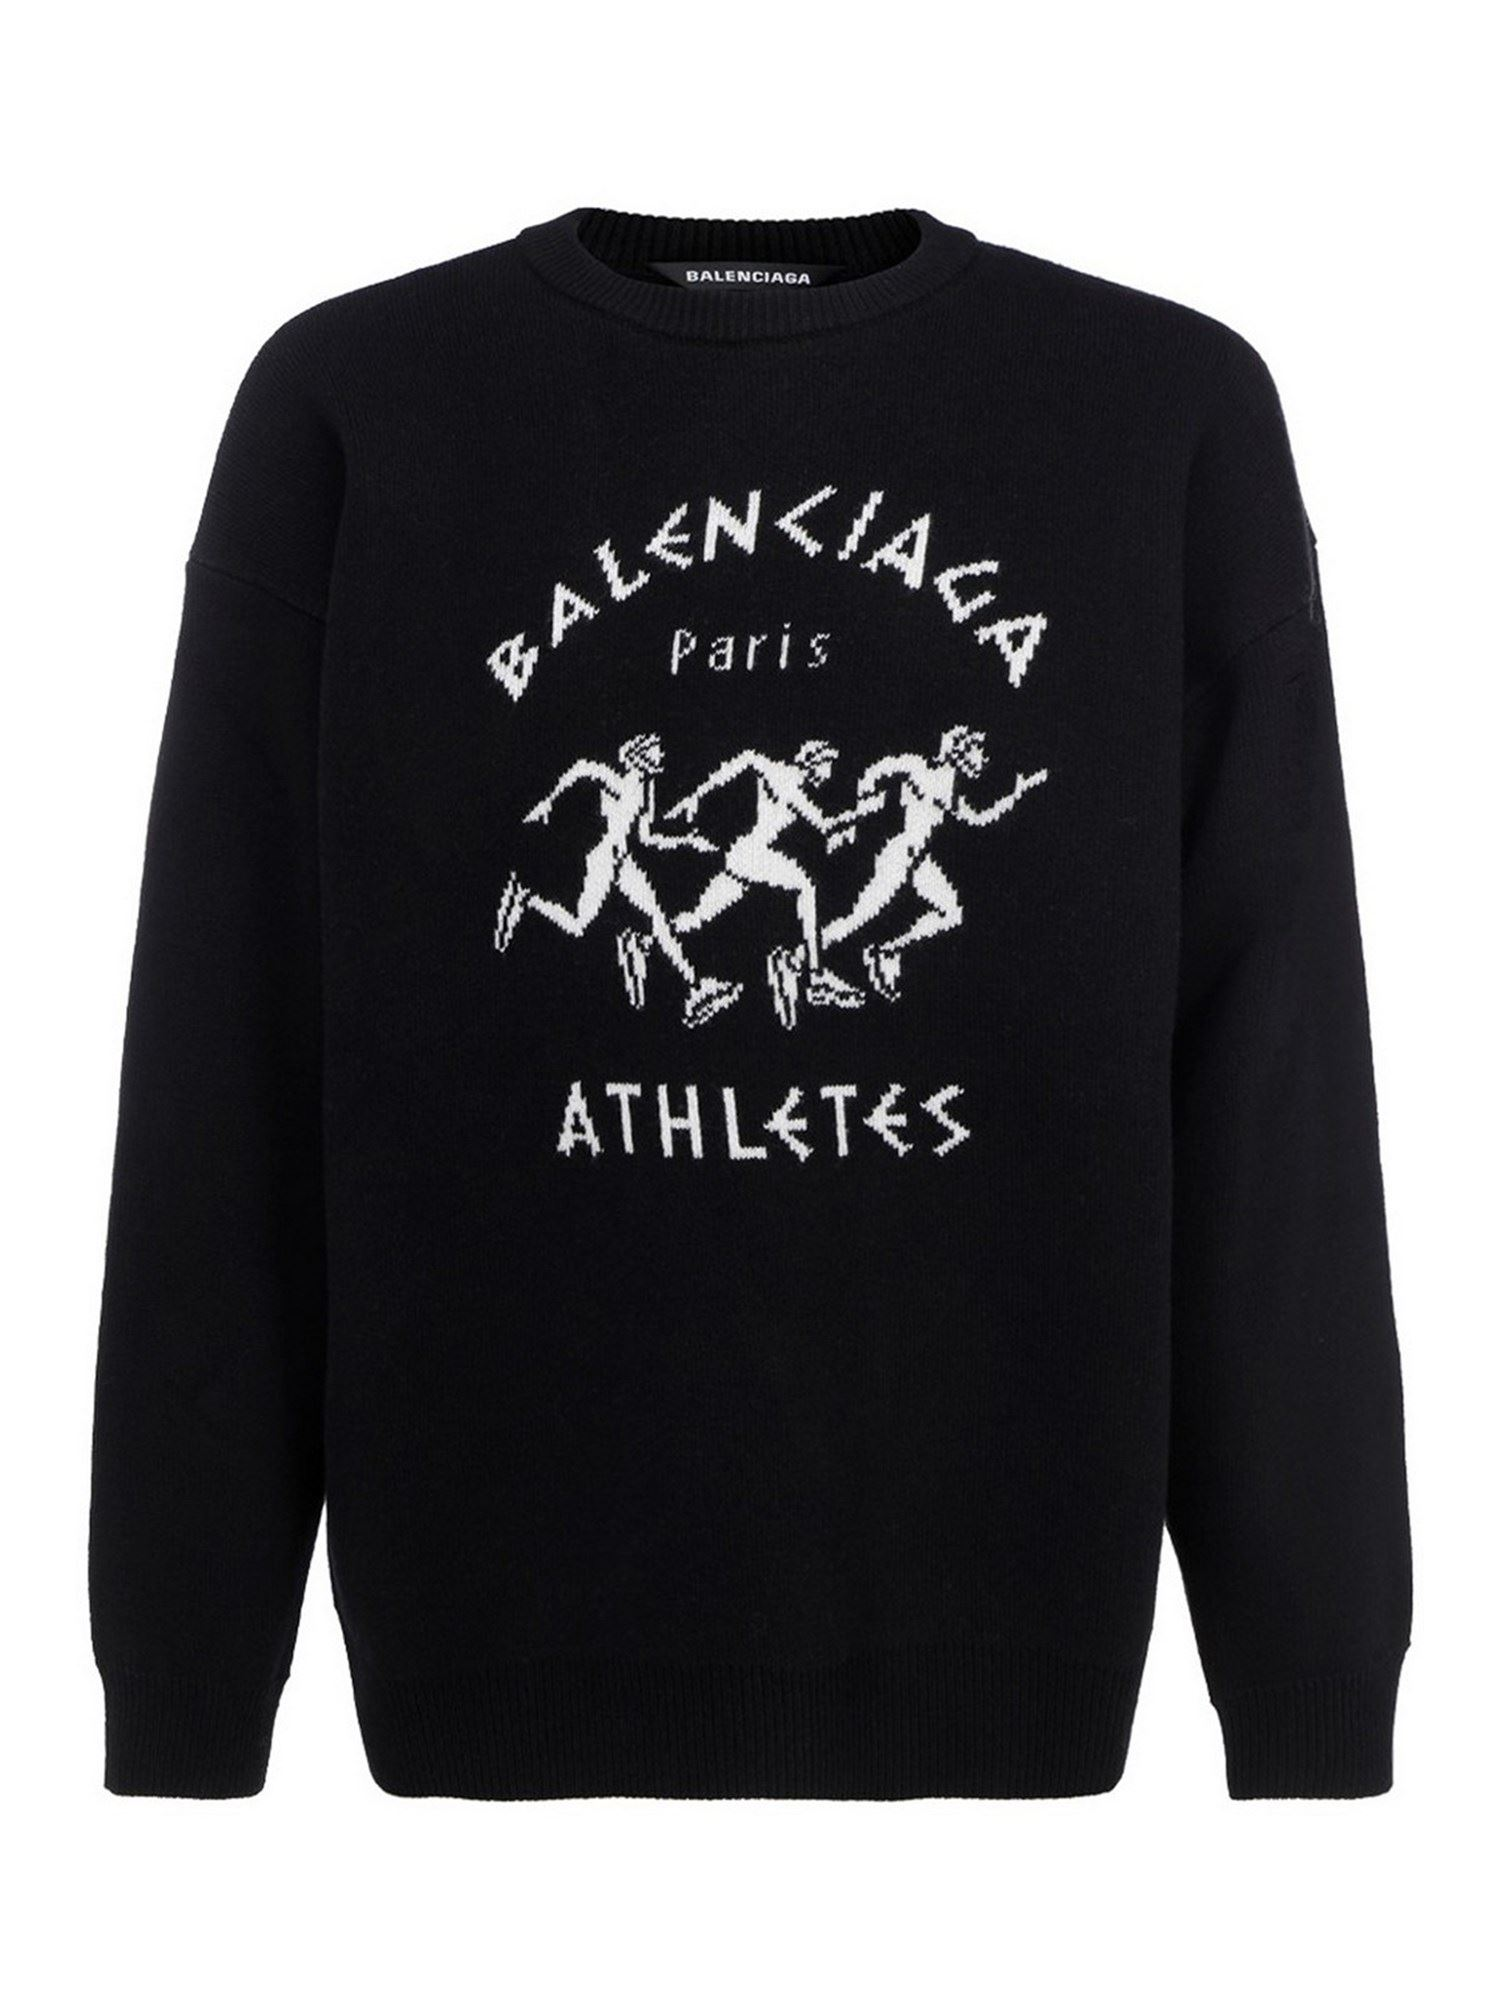 Balenciaga ATHLETES WOOL-BLEND JUMPER IN BLACK